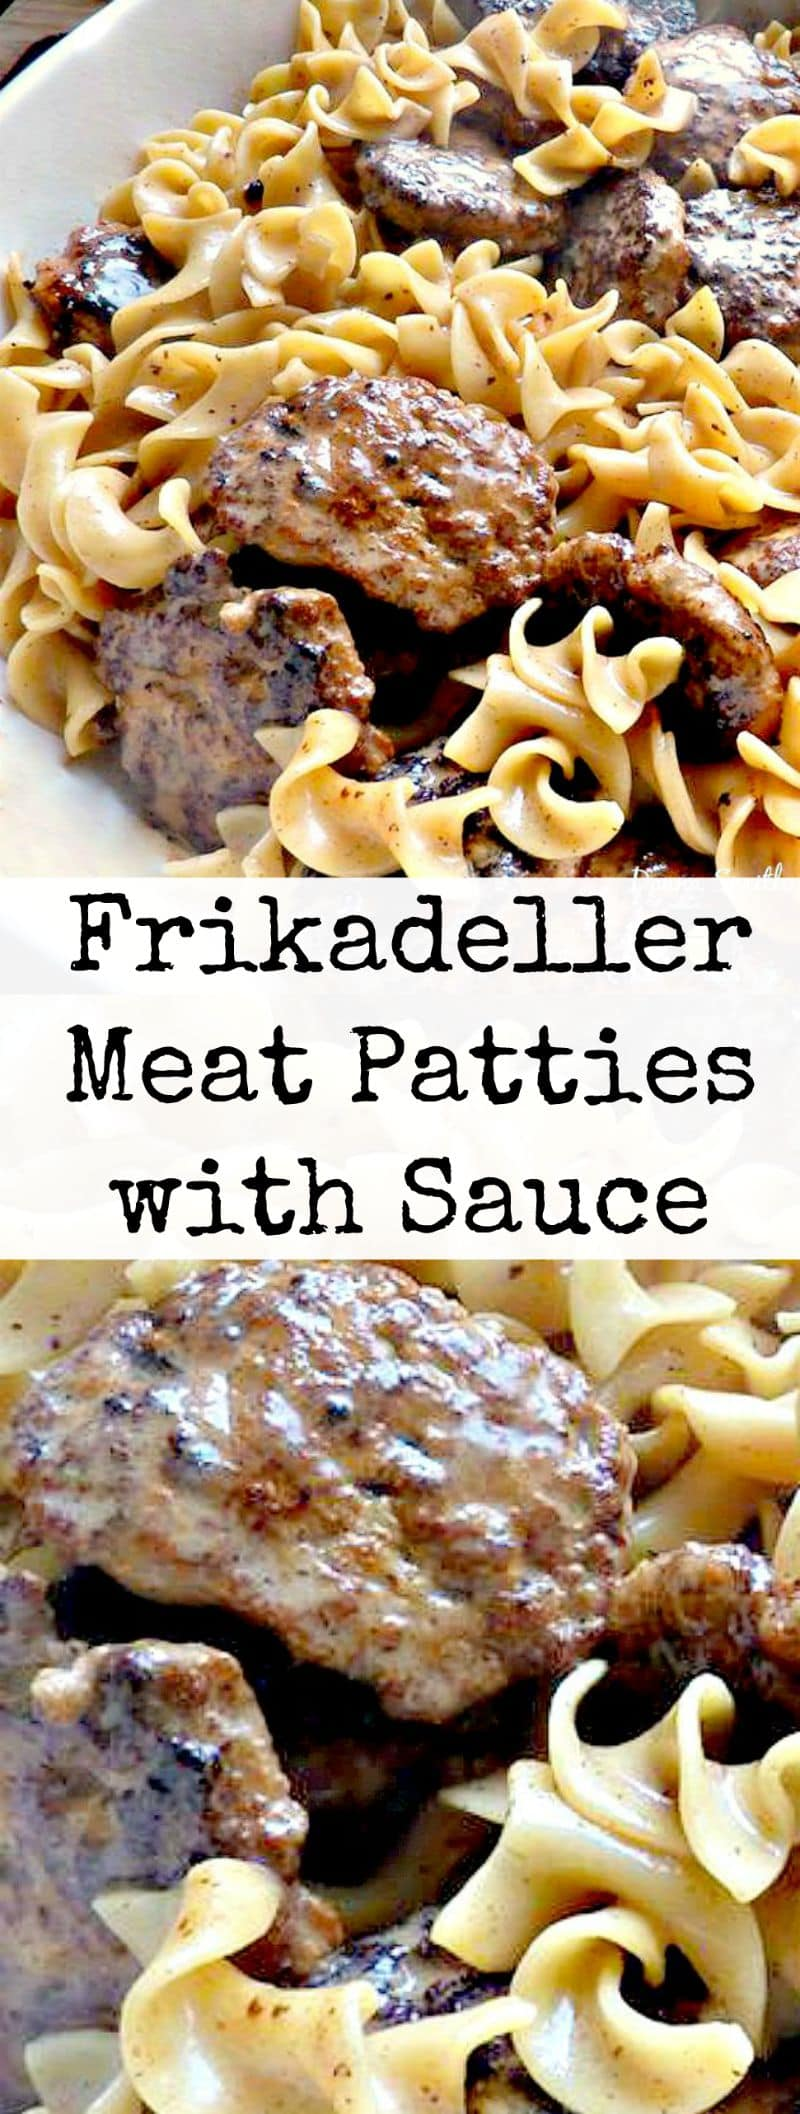 Frikadeller Meat Patties with Sauce. Made with ground meat and a lovely sauce. Delicious served with pasta!